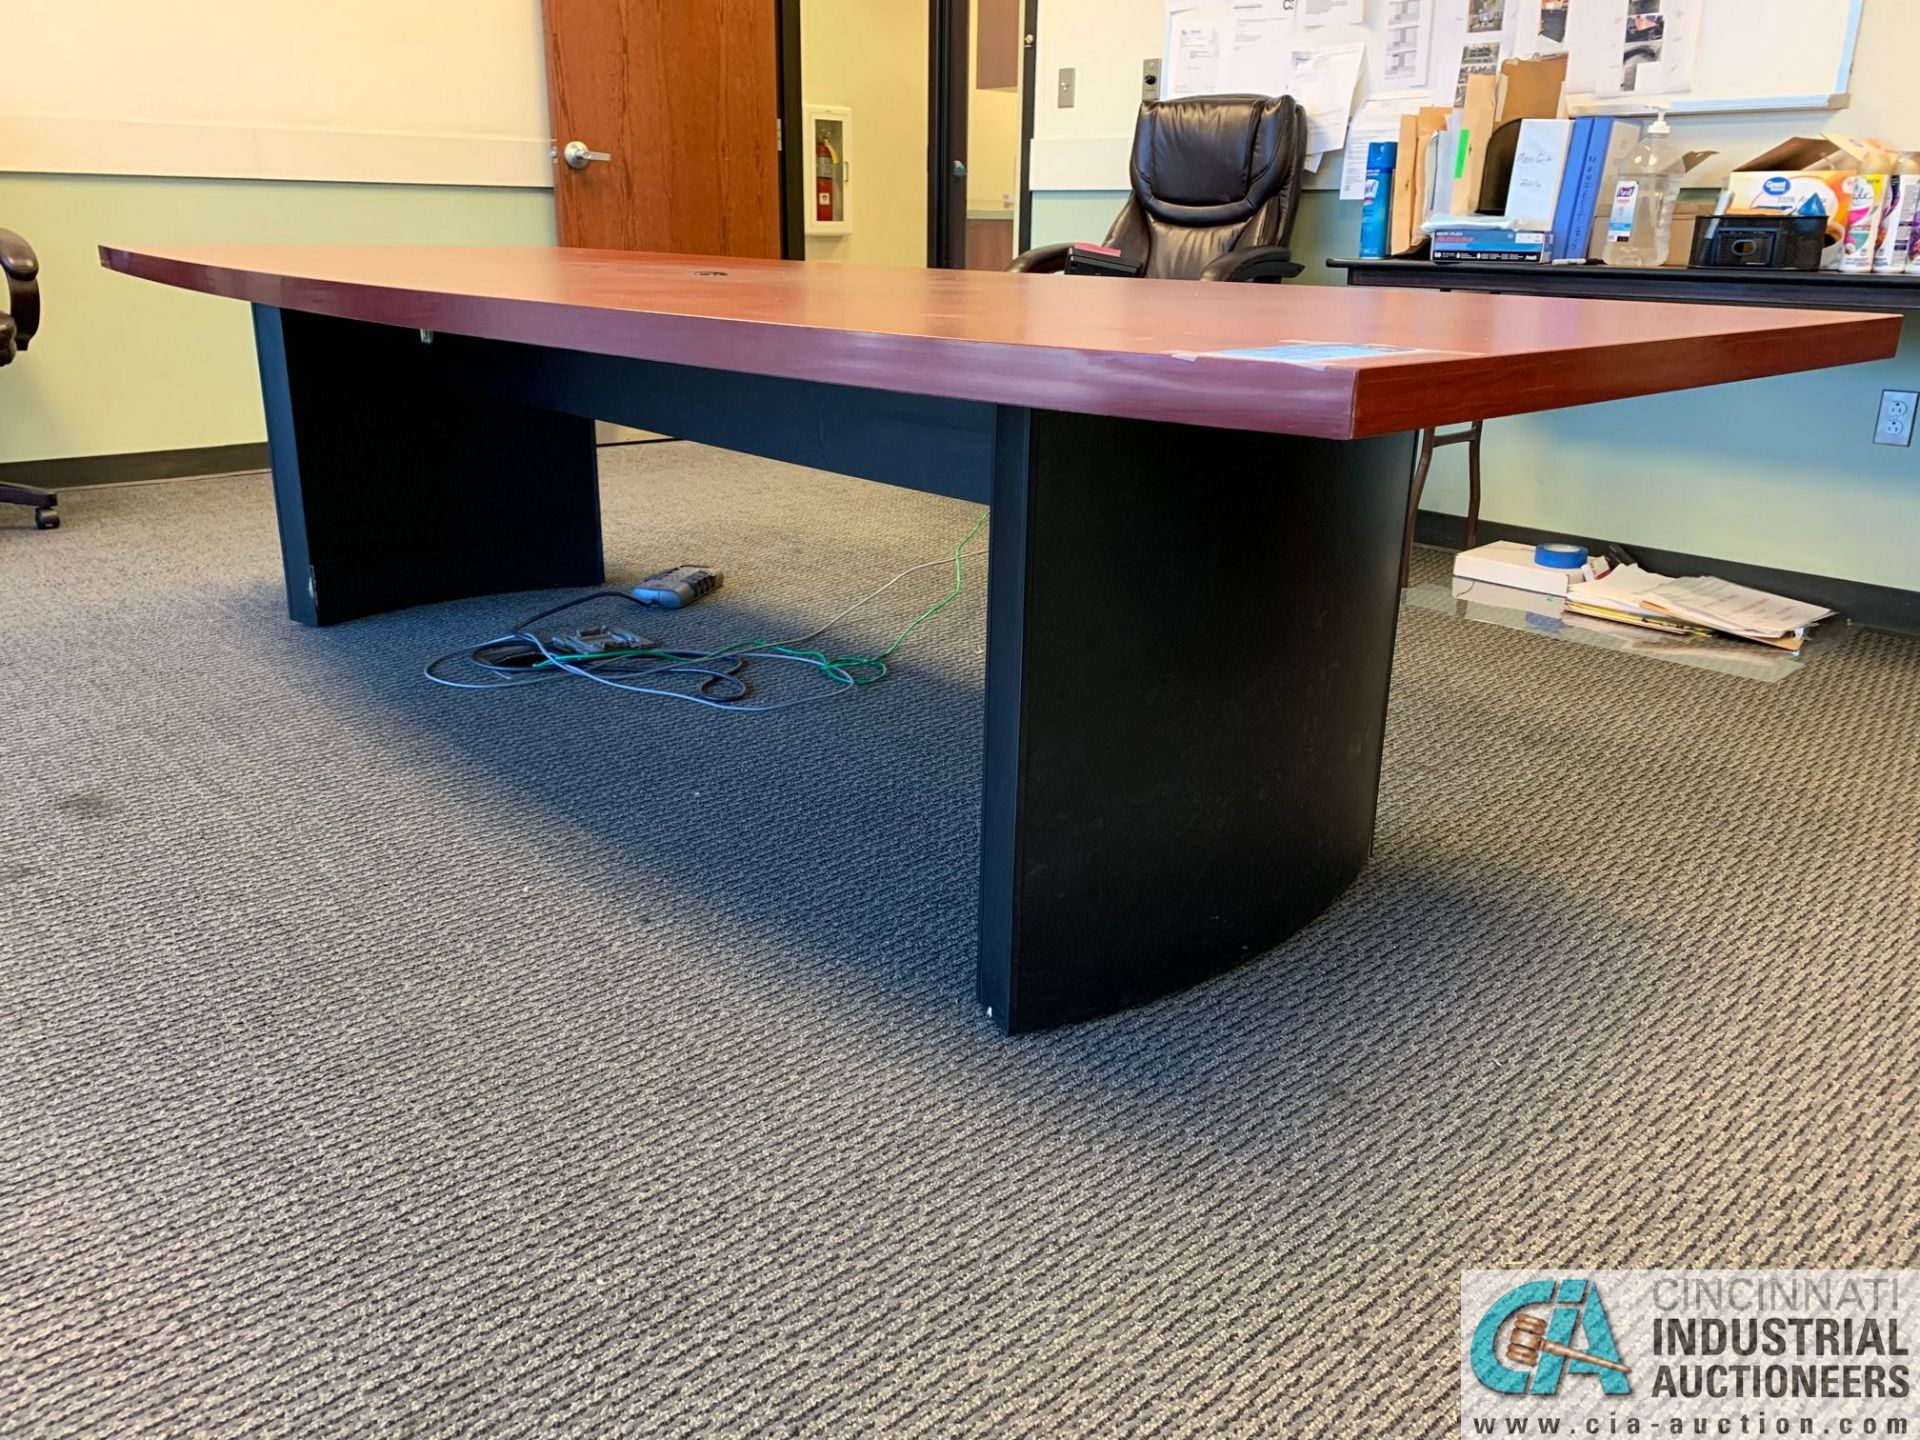 10' X 4' EXECUTIVE CONFERENCE TABLE (NO CHAIRS) (5400 OAKLEY INDUSTRIAL BLVD., FAIRBURN, GA 30213) - Image 2 of 4